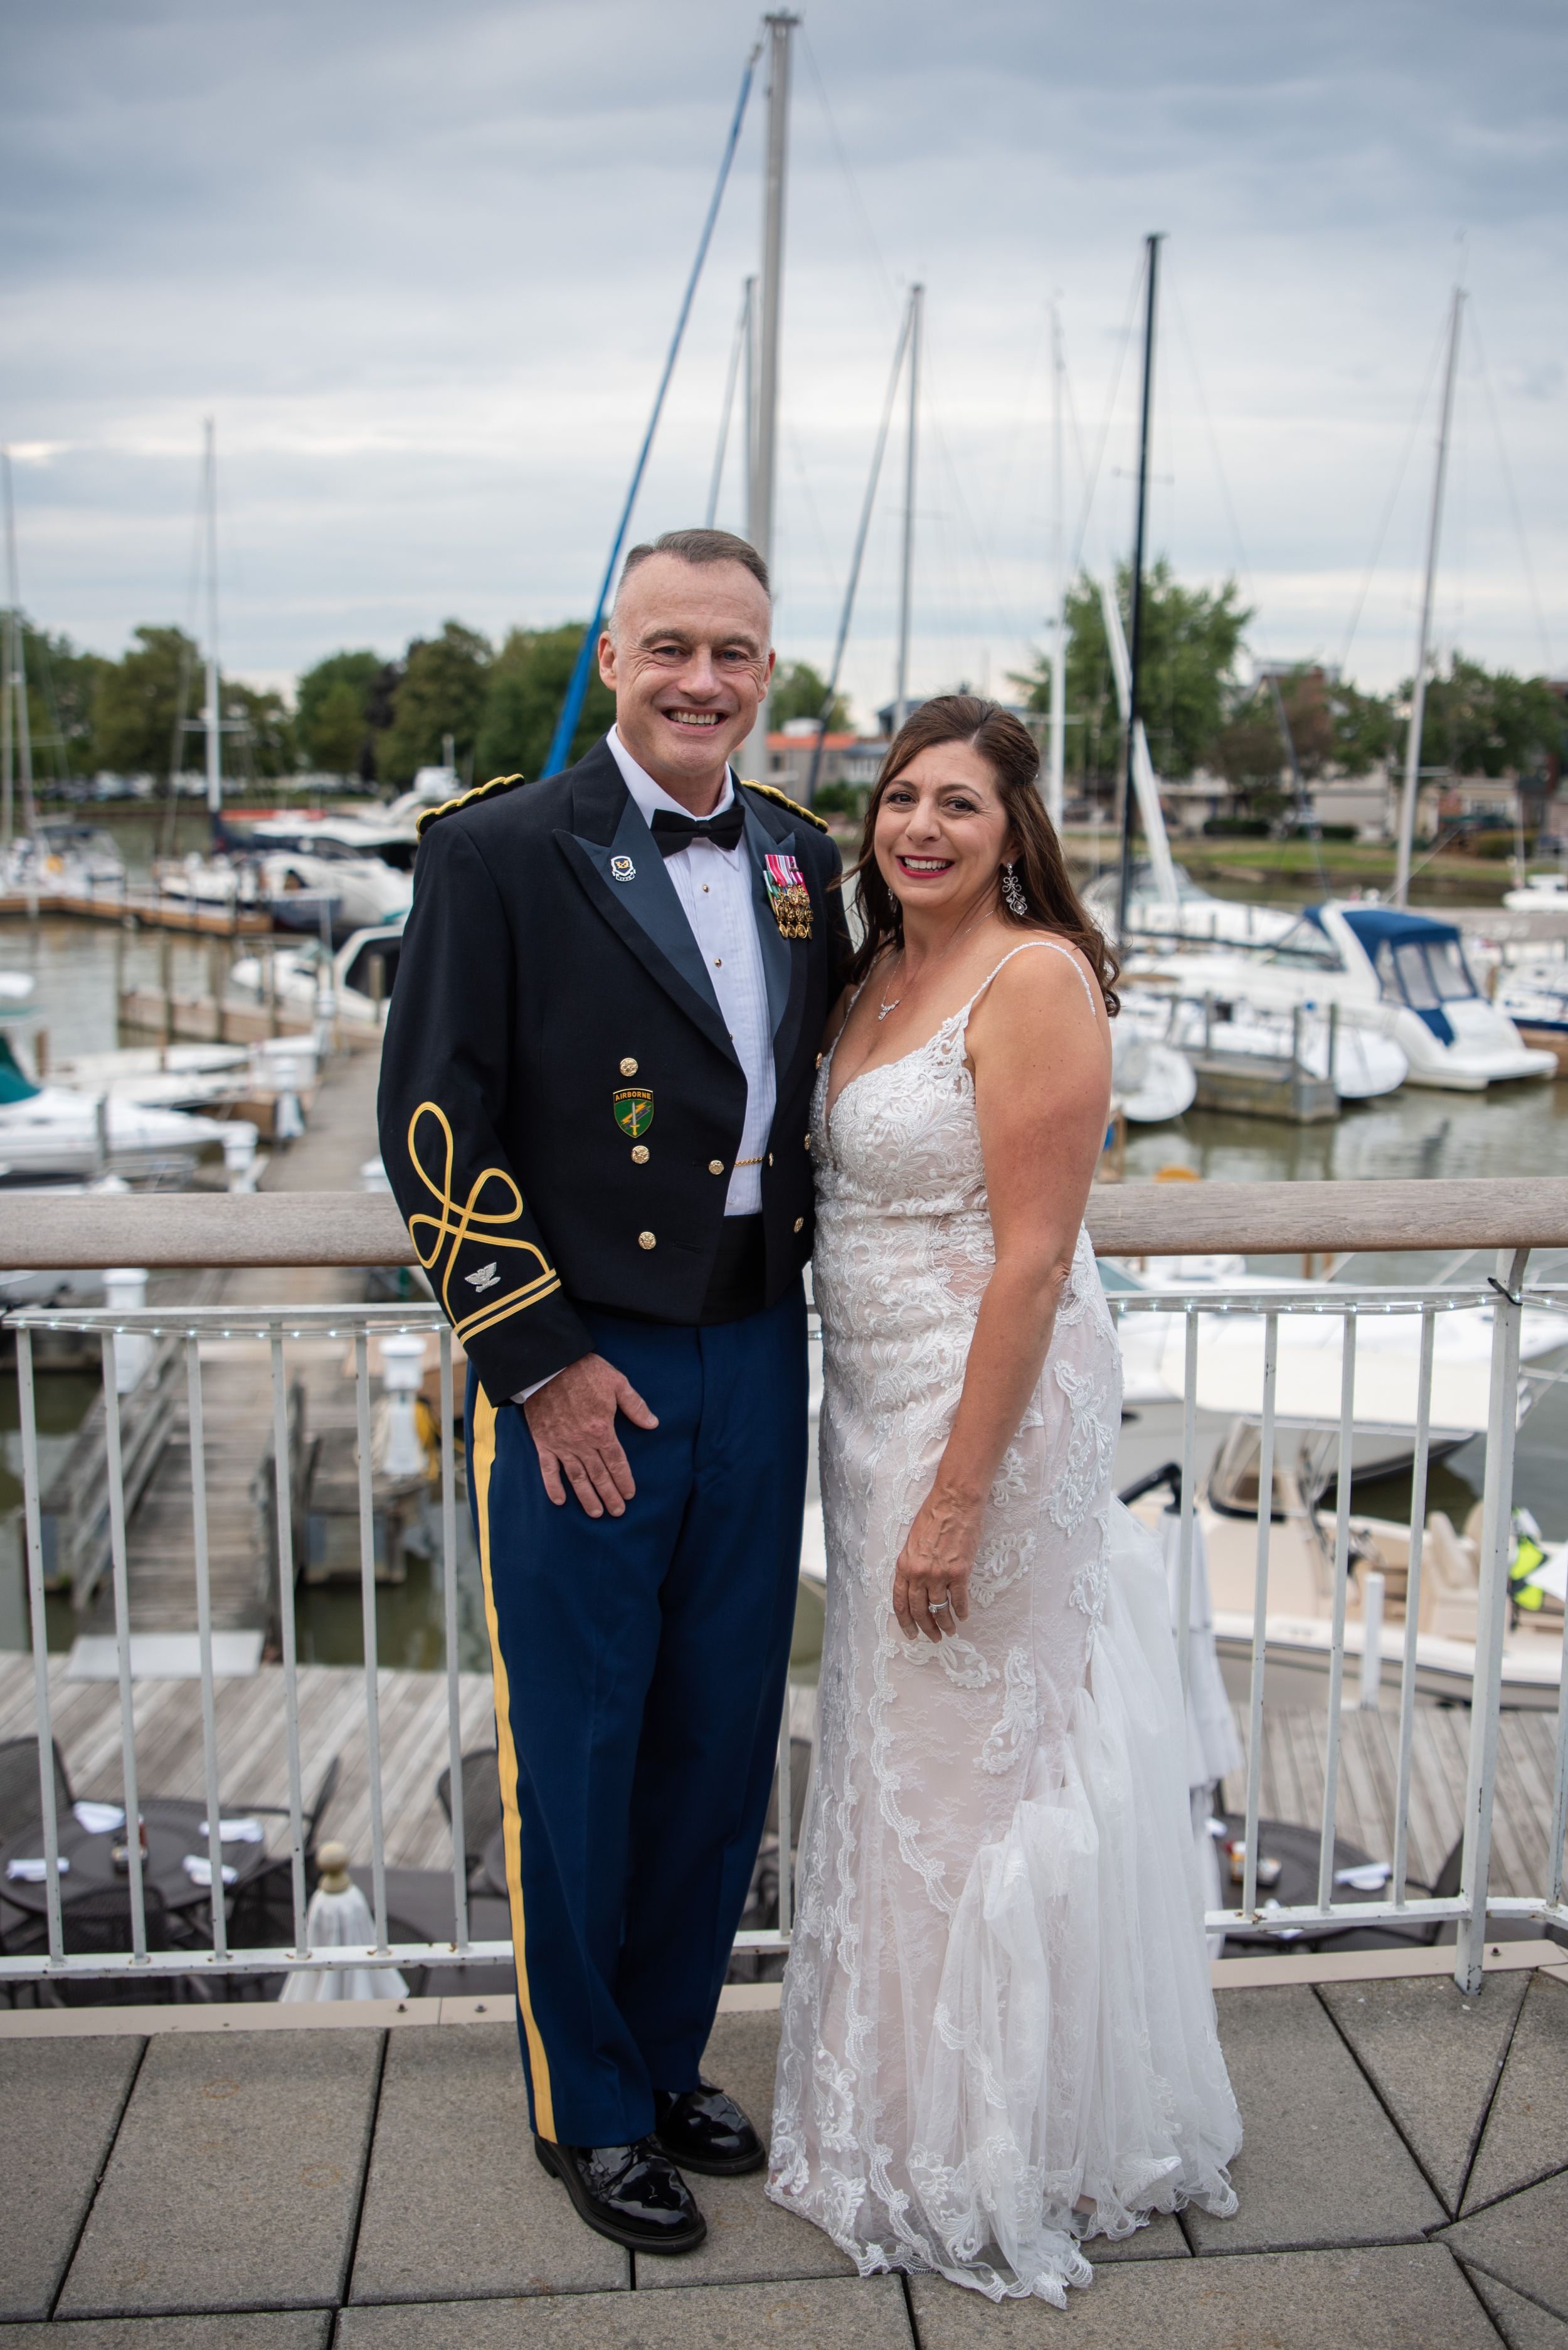 bride and groom on deck at outdoor wedding, Cleveland Yachting Club, Ohio